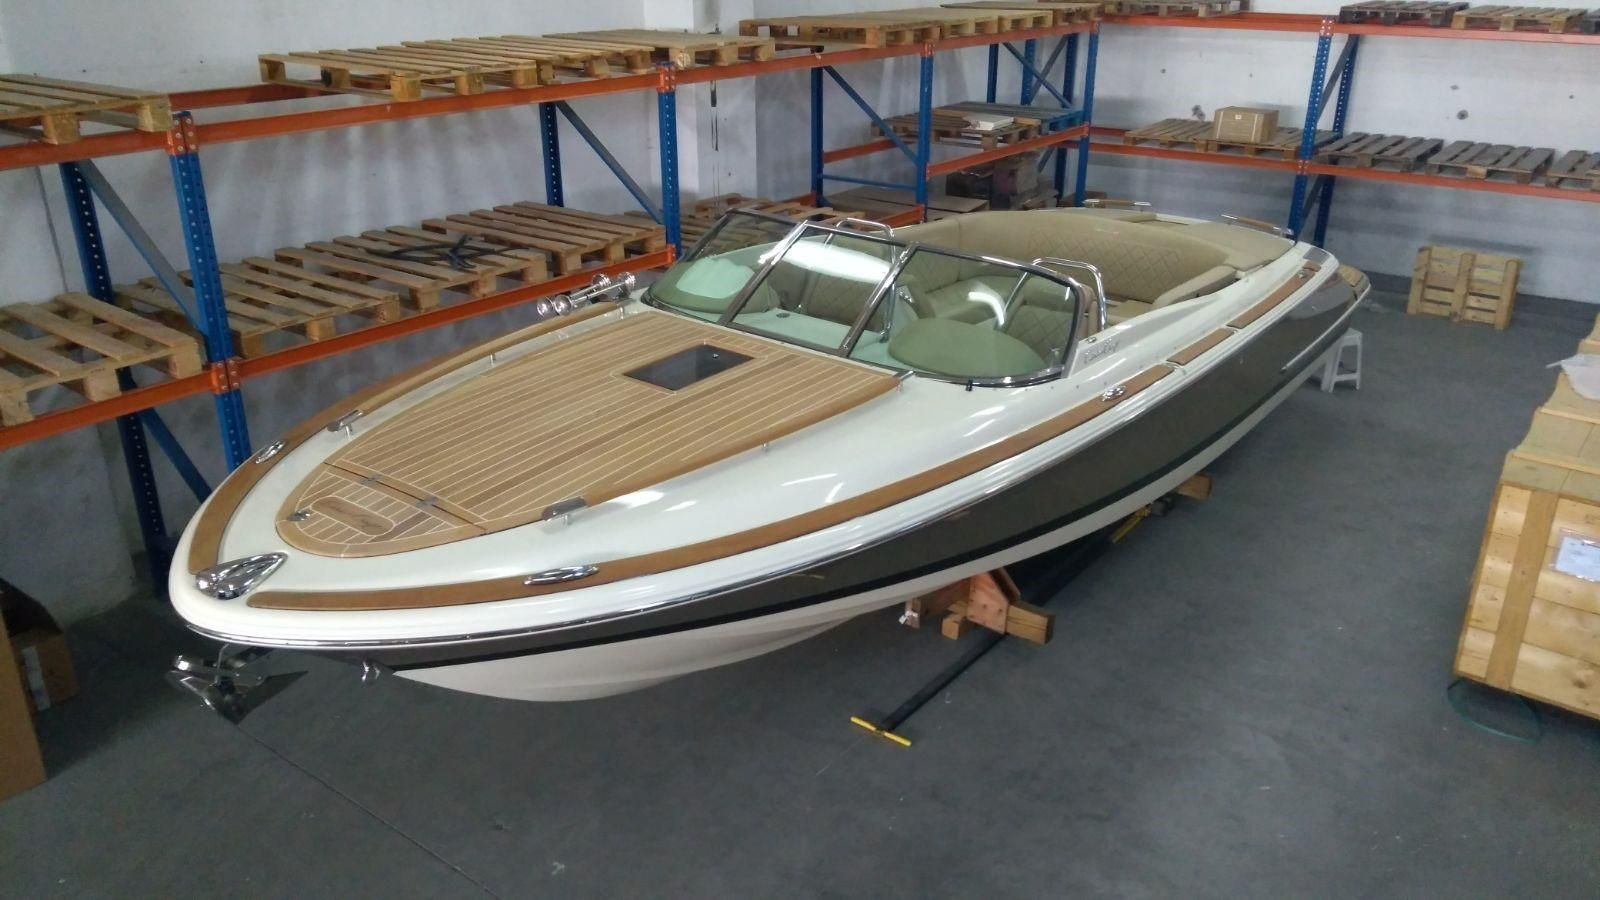 2017 chris craft corsair 25 power boat for sale www for Chris craft corsair 32 for sale